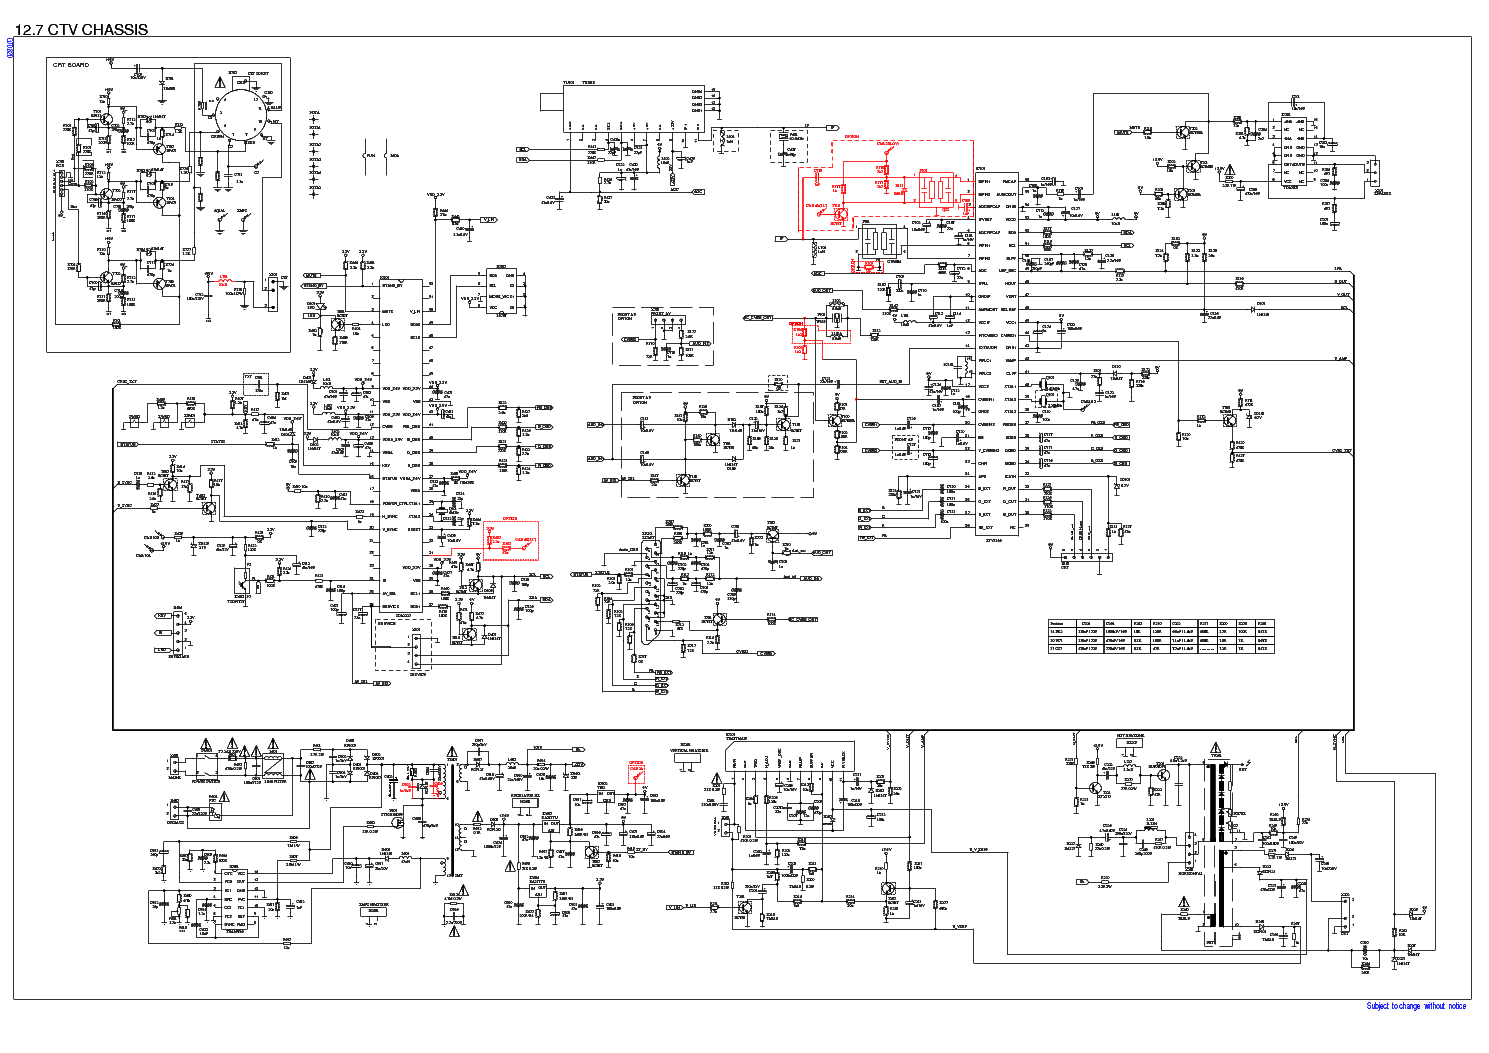 Wiring Diagram Pdf Data Residential Circuit Electrical Information Why How Electronics Circuits Diagrams Source Electronic Schematic Manual